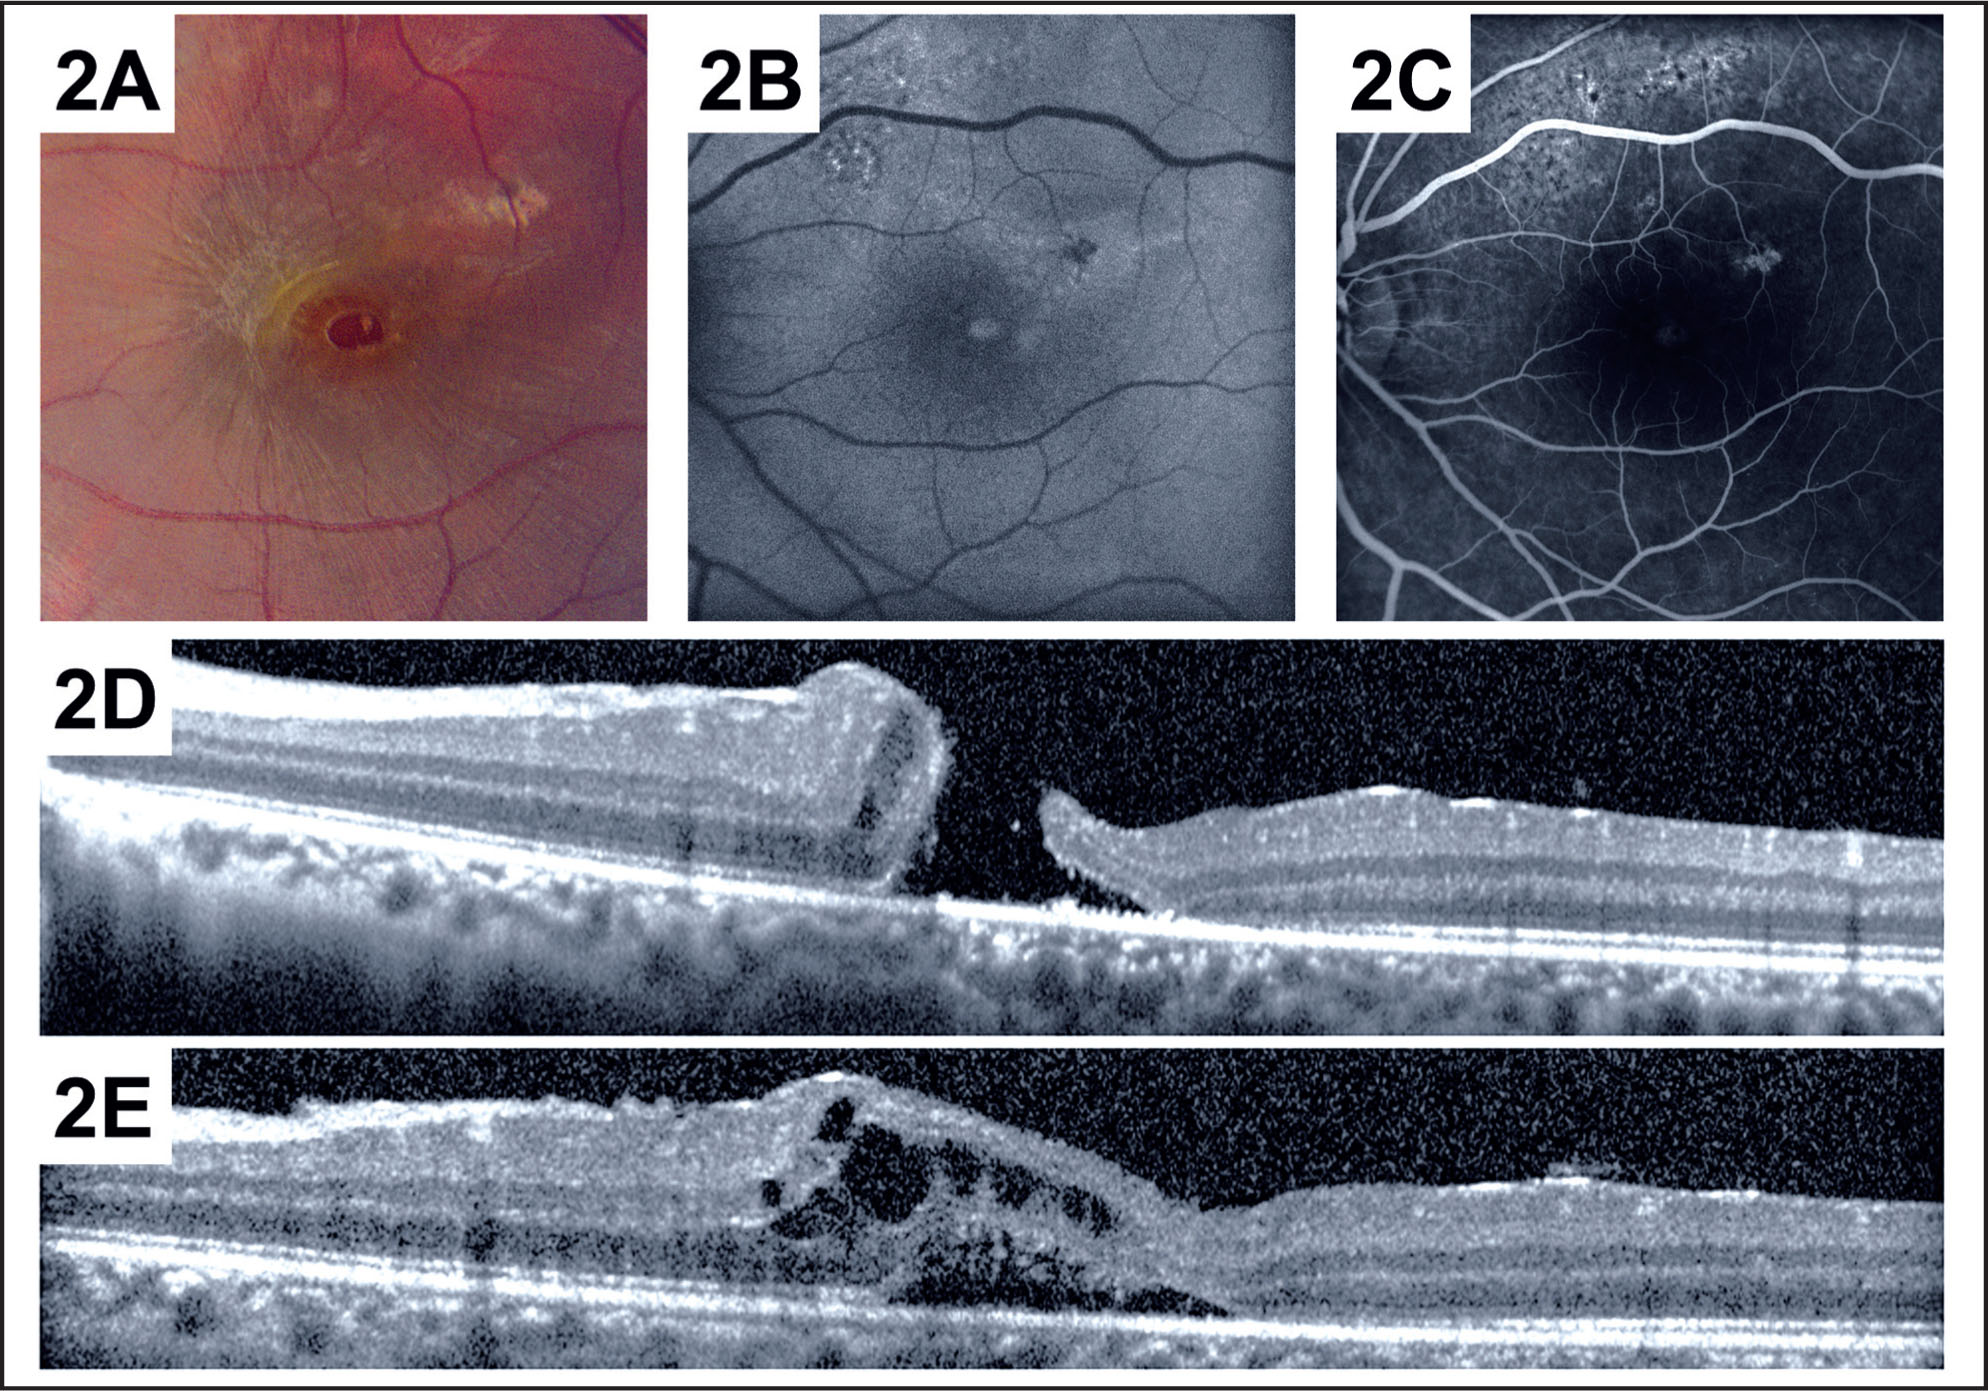 Preoperative Images of the Left Macula. (A) Fundus Photography Shows a Full-Thickness Macular Hole Involving the Central Macula. (B) Fundus Autofluorescence Shows Increased Autofluorescence Centrally and Multifocal Abnormalities Superiorly and Temporally. (C) Fluorescein Angiography in the Venous Phase Shows Mild Central Hyperfluorescence and Patchy Superior Irregular Hyperfluorescence at the Level of the Retinal Pigment Epithelium. Spectral-Domain Optical Coherence Tomography (spectralis; Heidelberg Engineering, Heidelberg, Germany) Shows a Full-Thickness Macular Hole (D) and Associated Subretinal and Intraretinal Fluid (E).